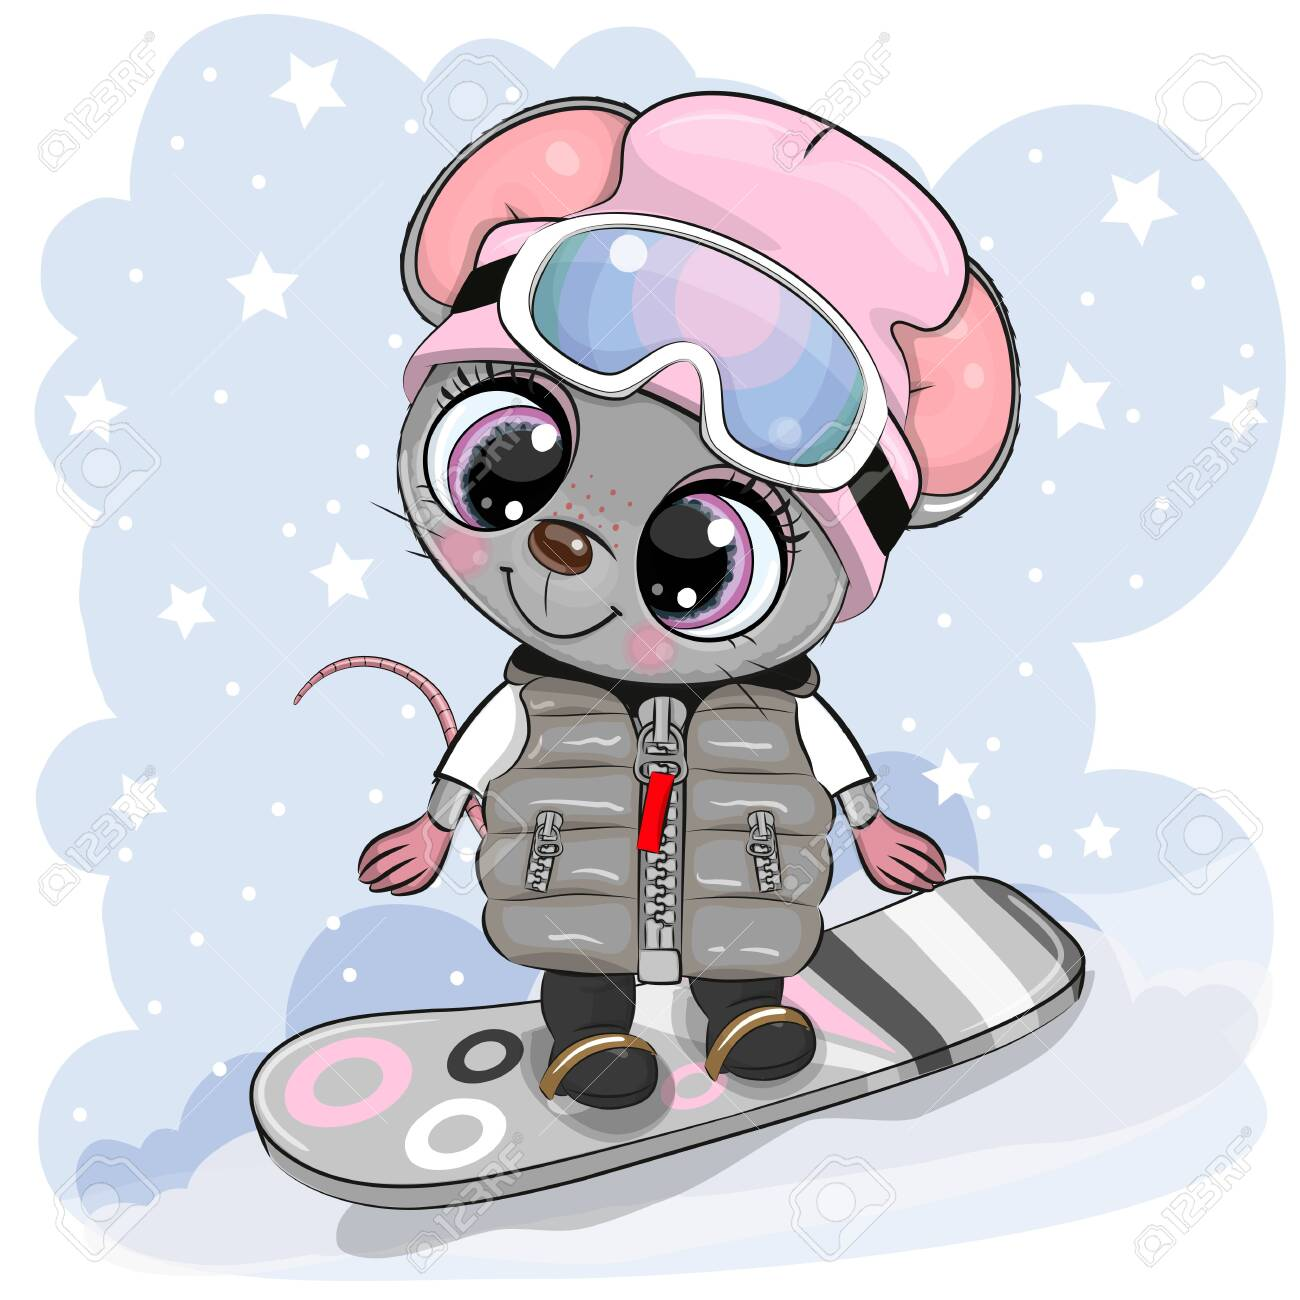 Cute cartoon Mouse Girl on a snowboard on a blue background - 130849316